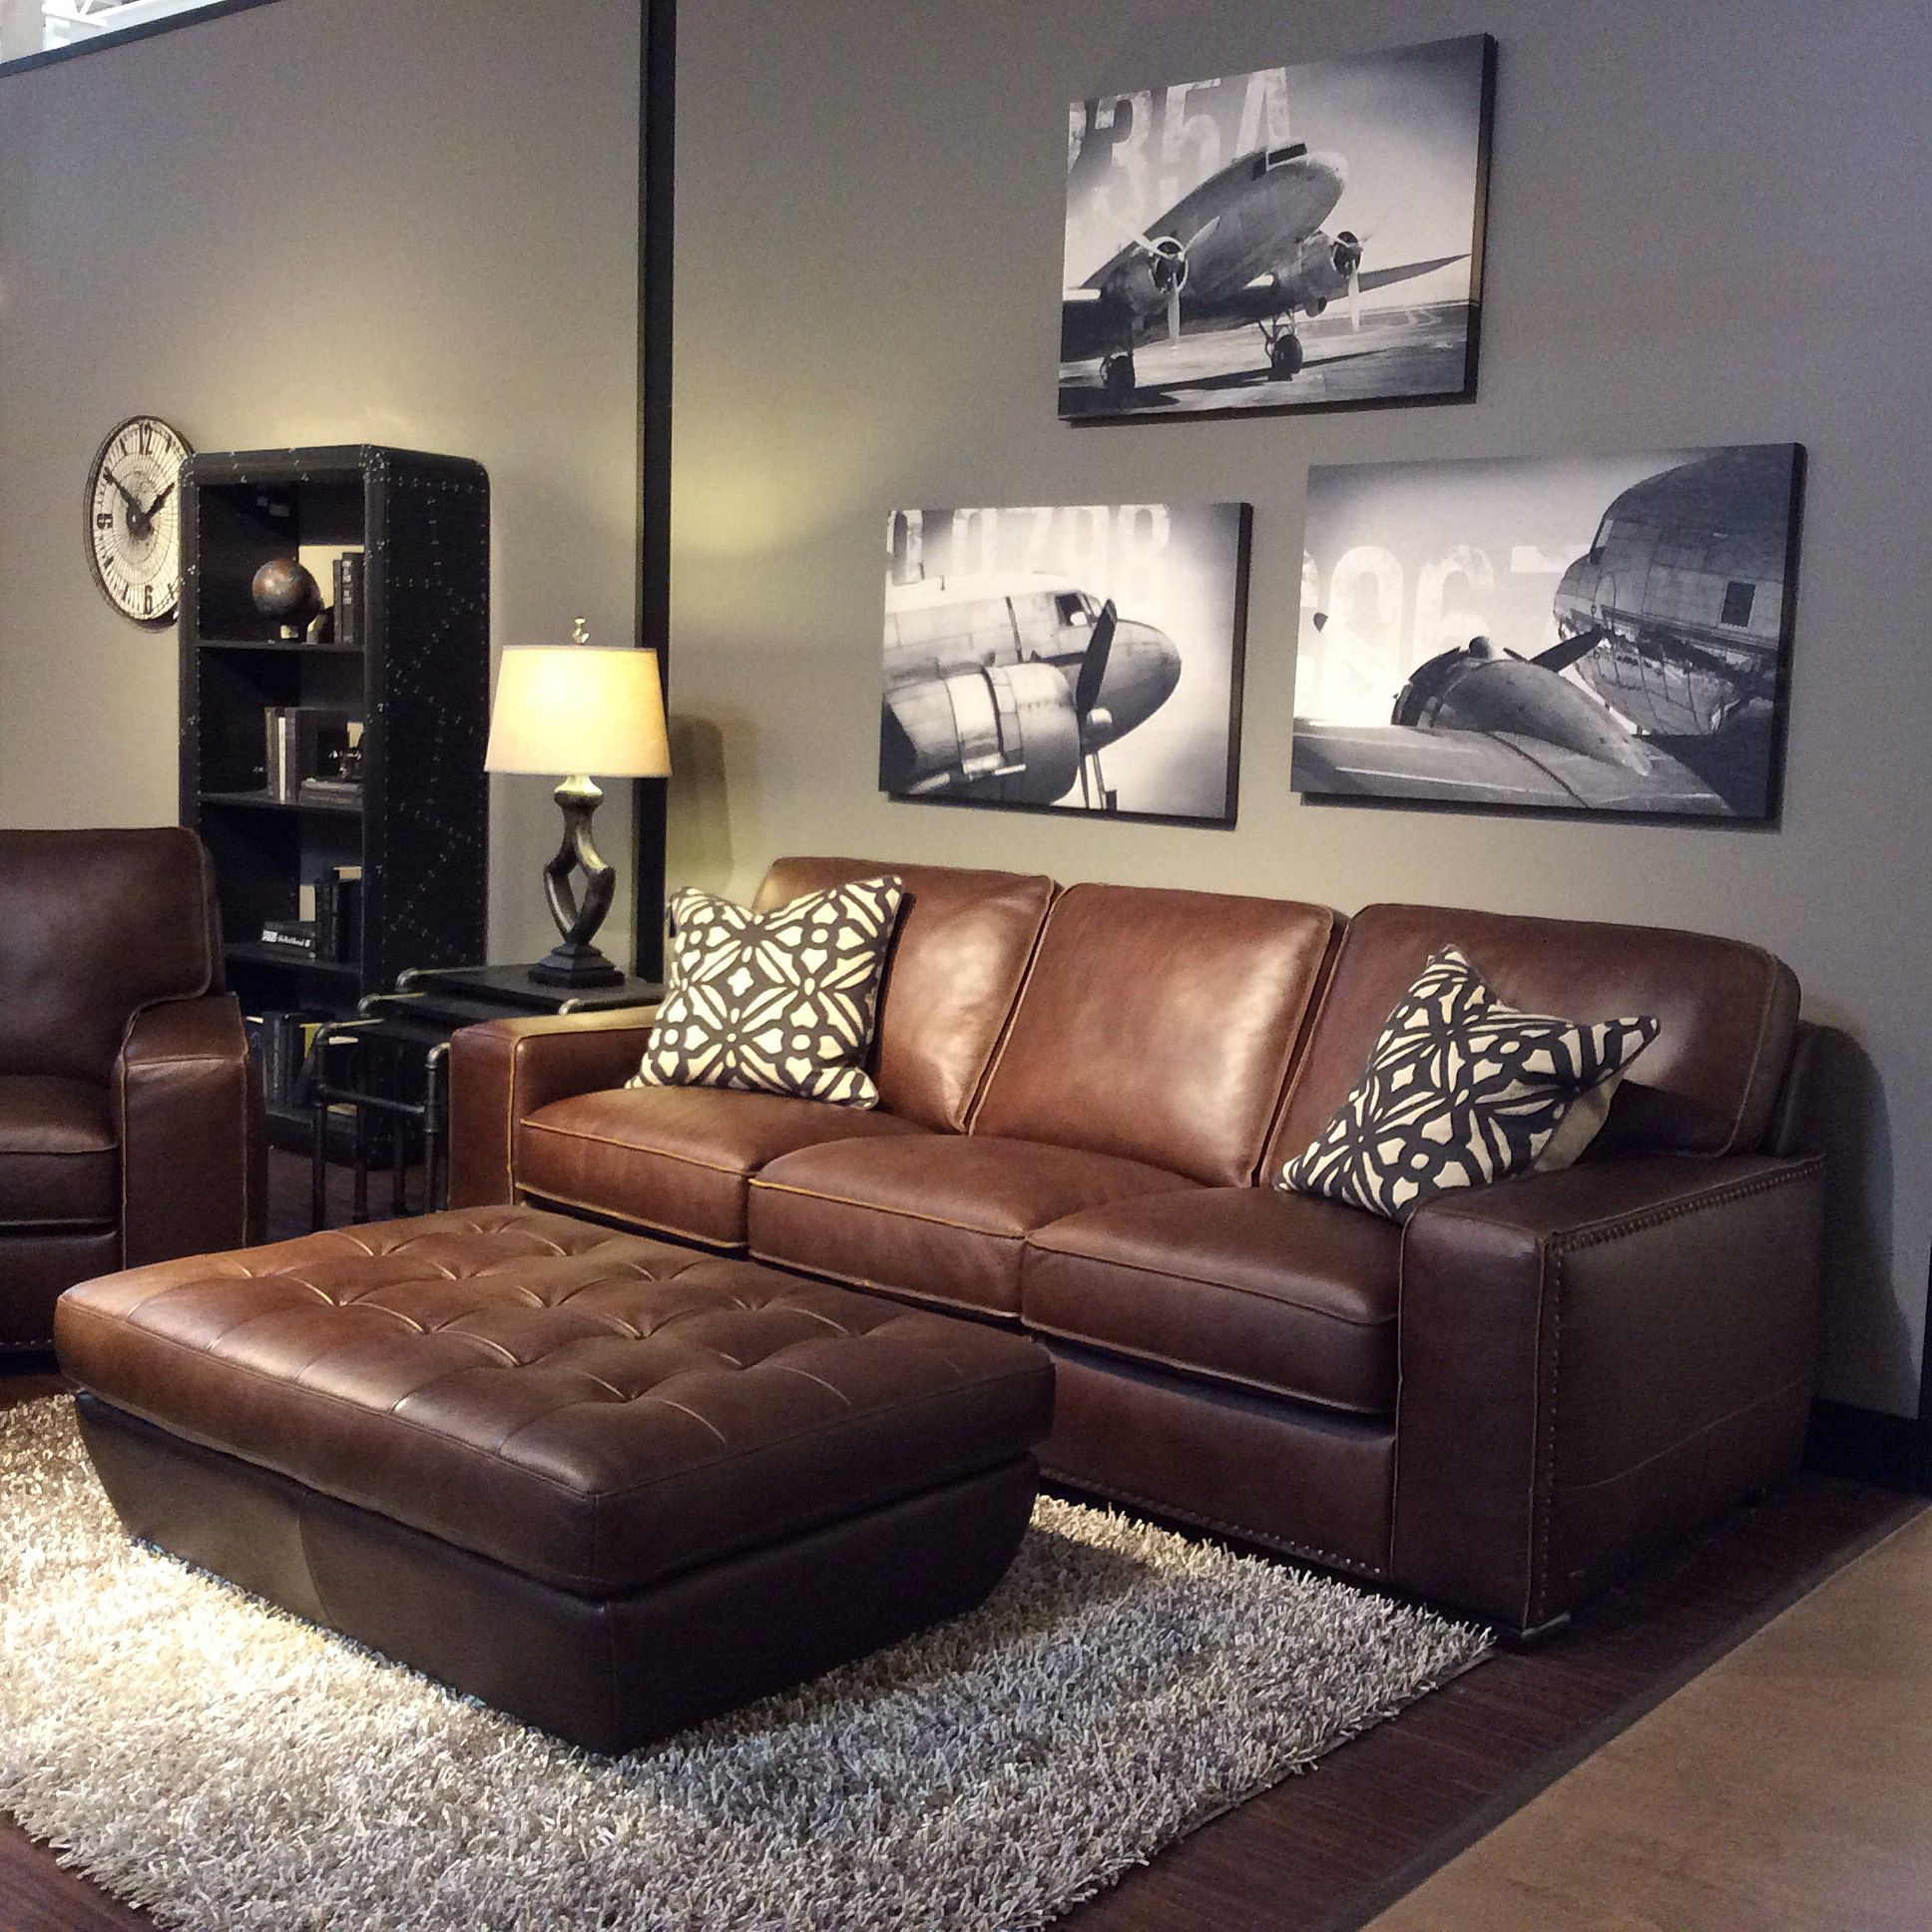 Family Room With Warm Gray Walls, Black And White Art, Brown Leather  Furniture, Part 89